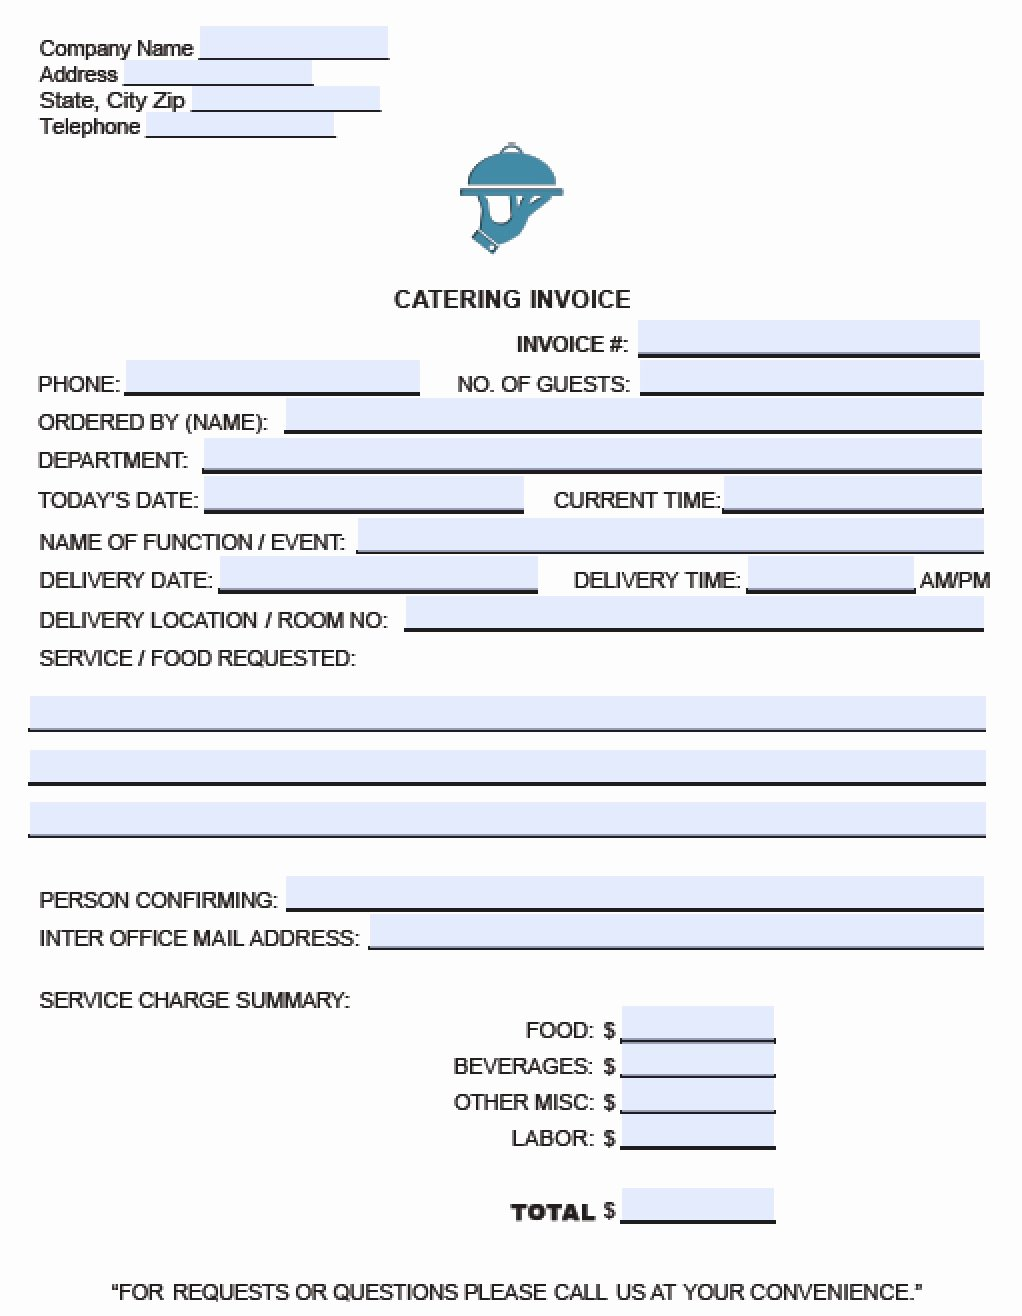 Catering order form Template Word Luxury Catering Service Invoice Spreadsheet Templates for Busines